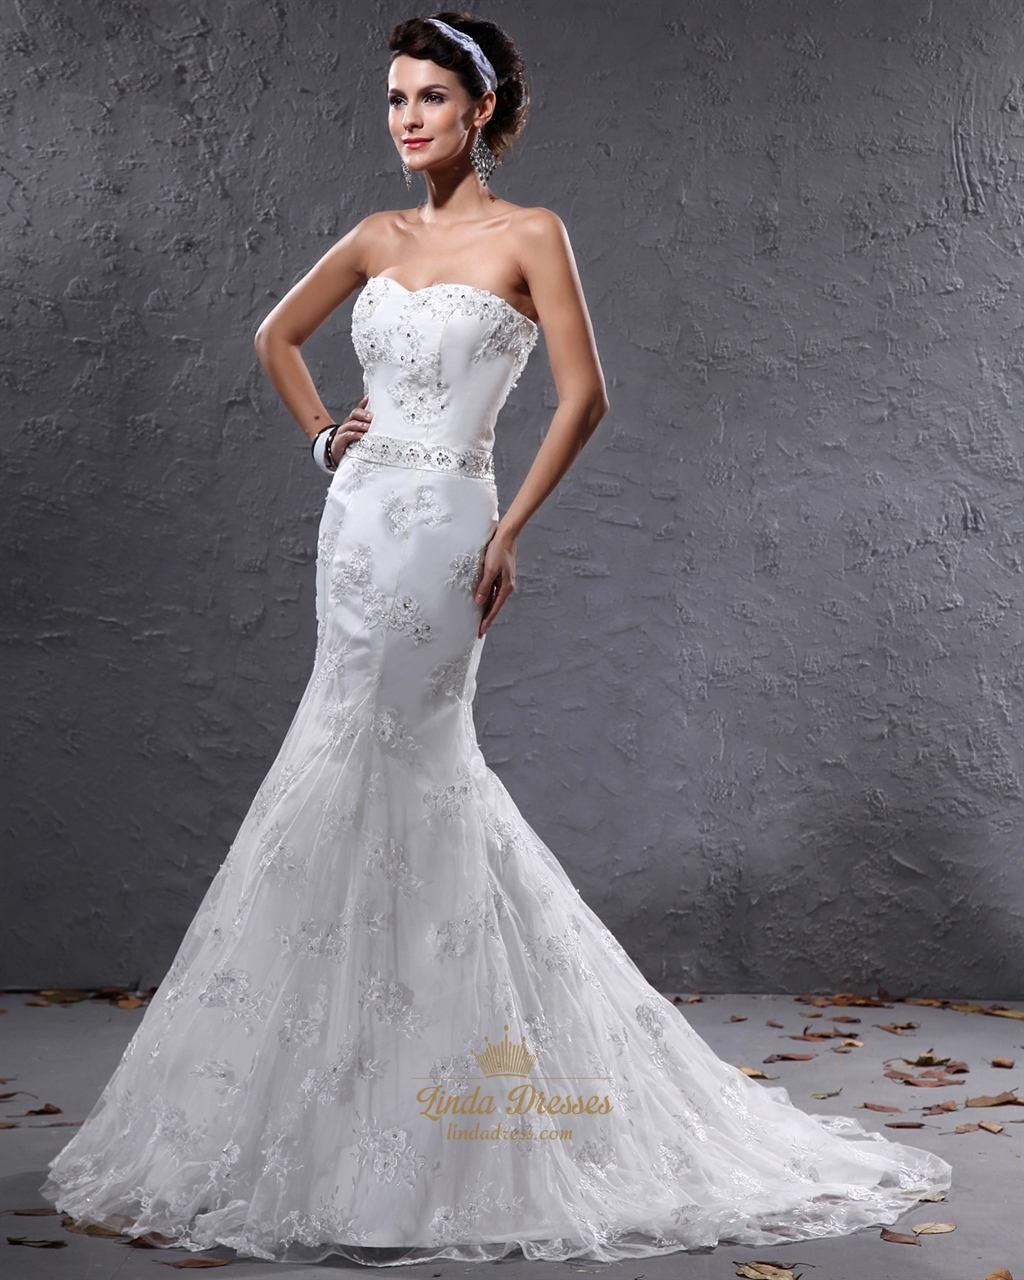 Ivory Mermaid Sweetheart Lace Wedding Dresses With Beaded Belt